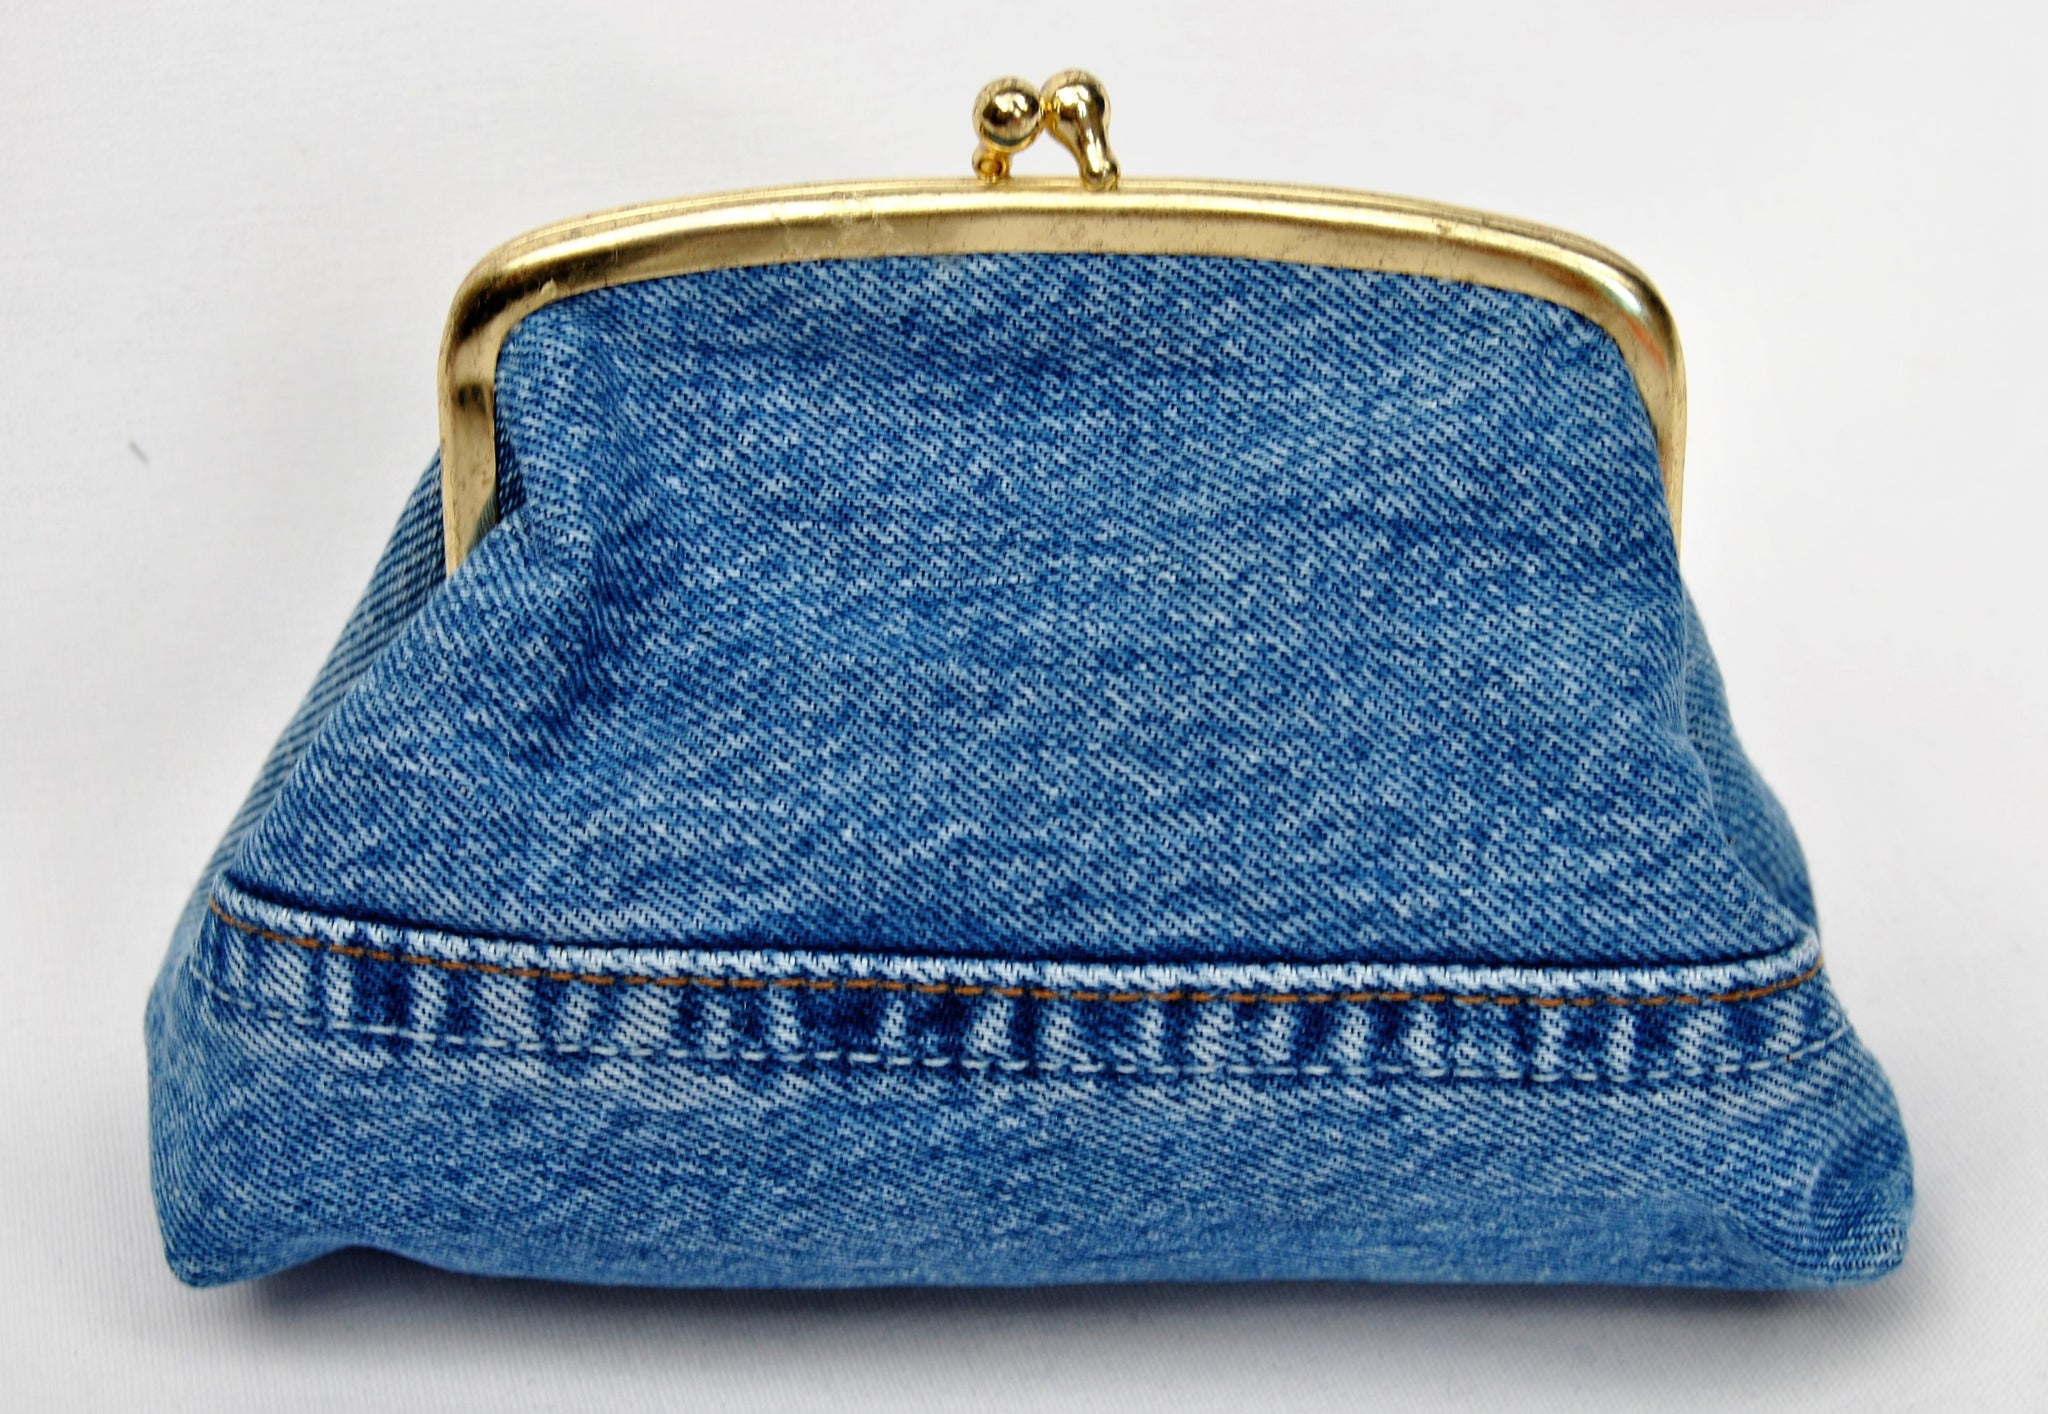 PlymouthRock purse